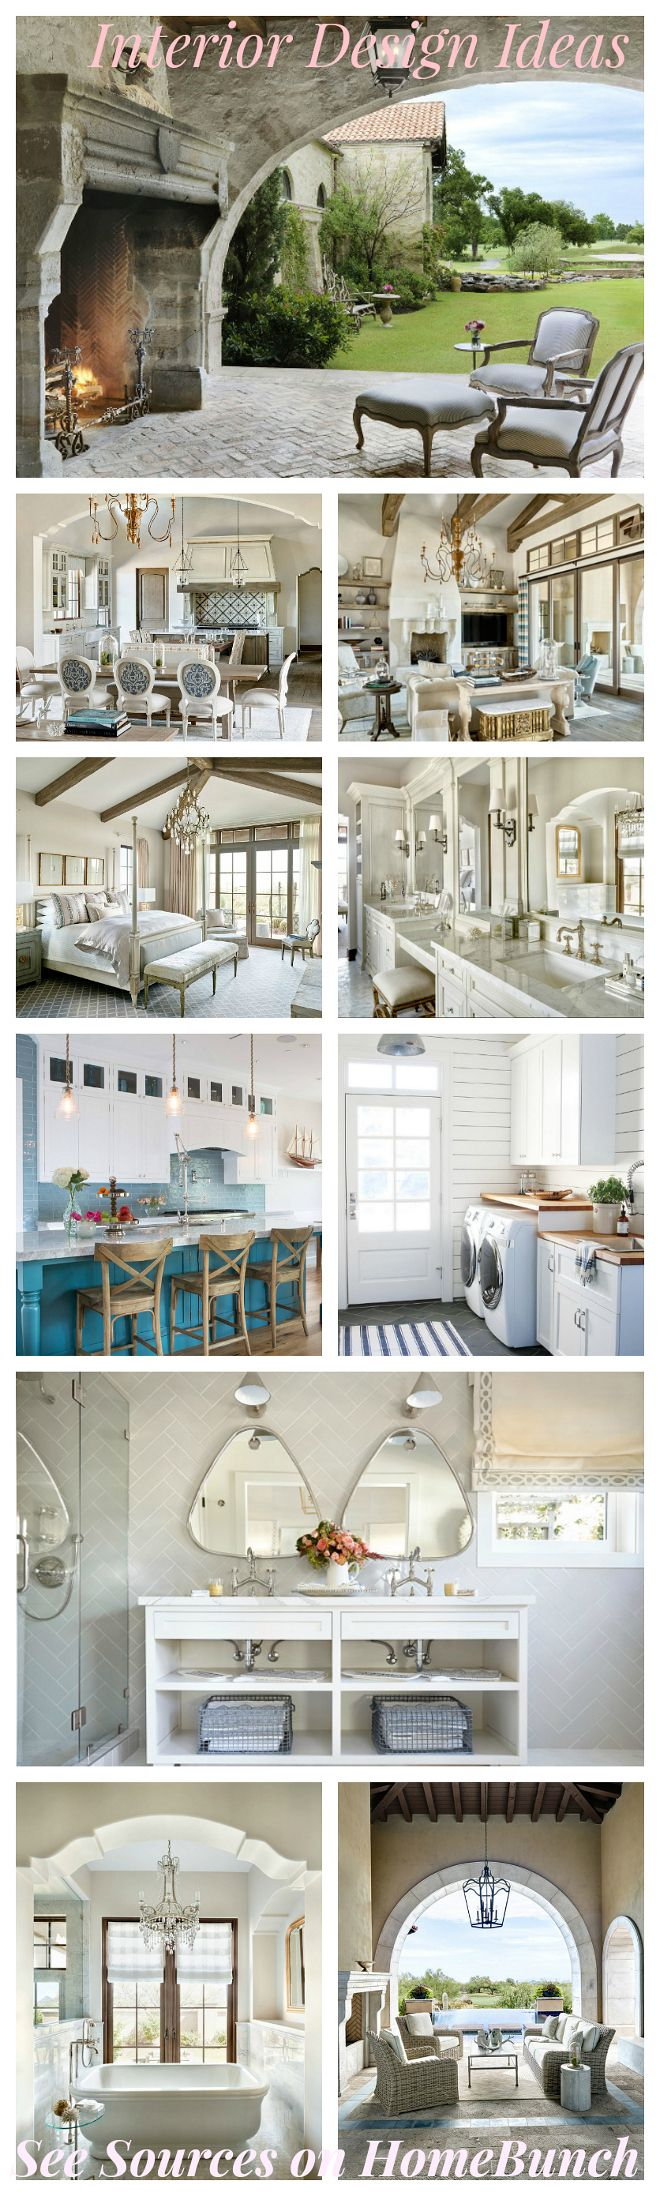 149 best mantels images on Pinterest   Beautiful bedrooms, Ceiling ...